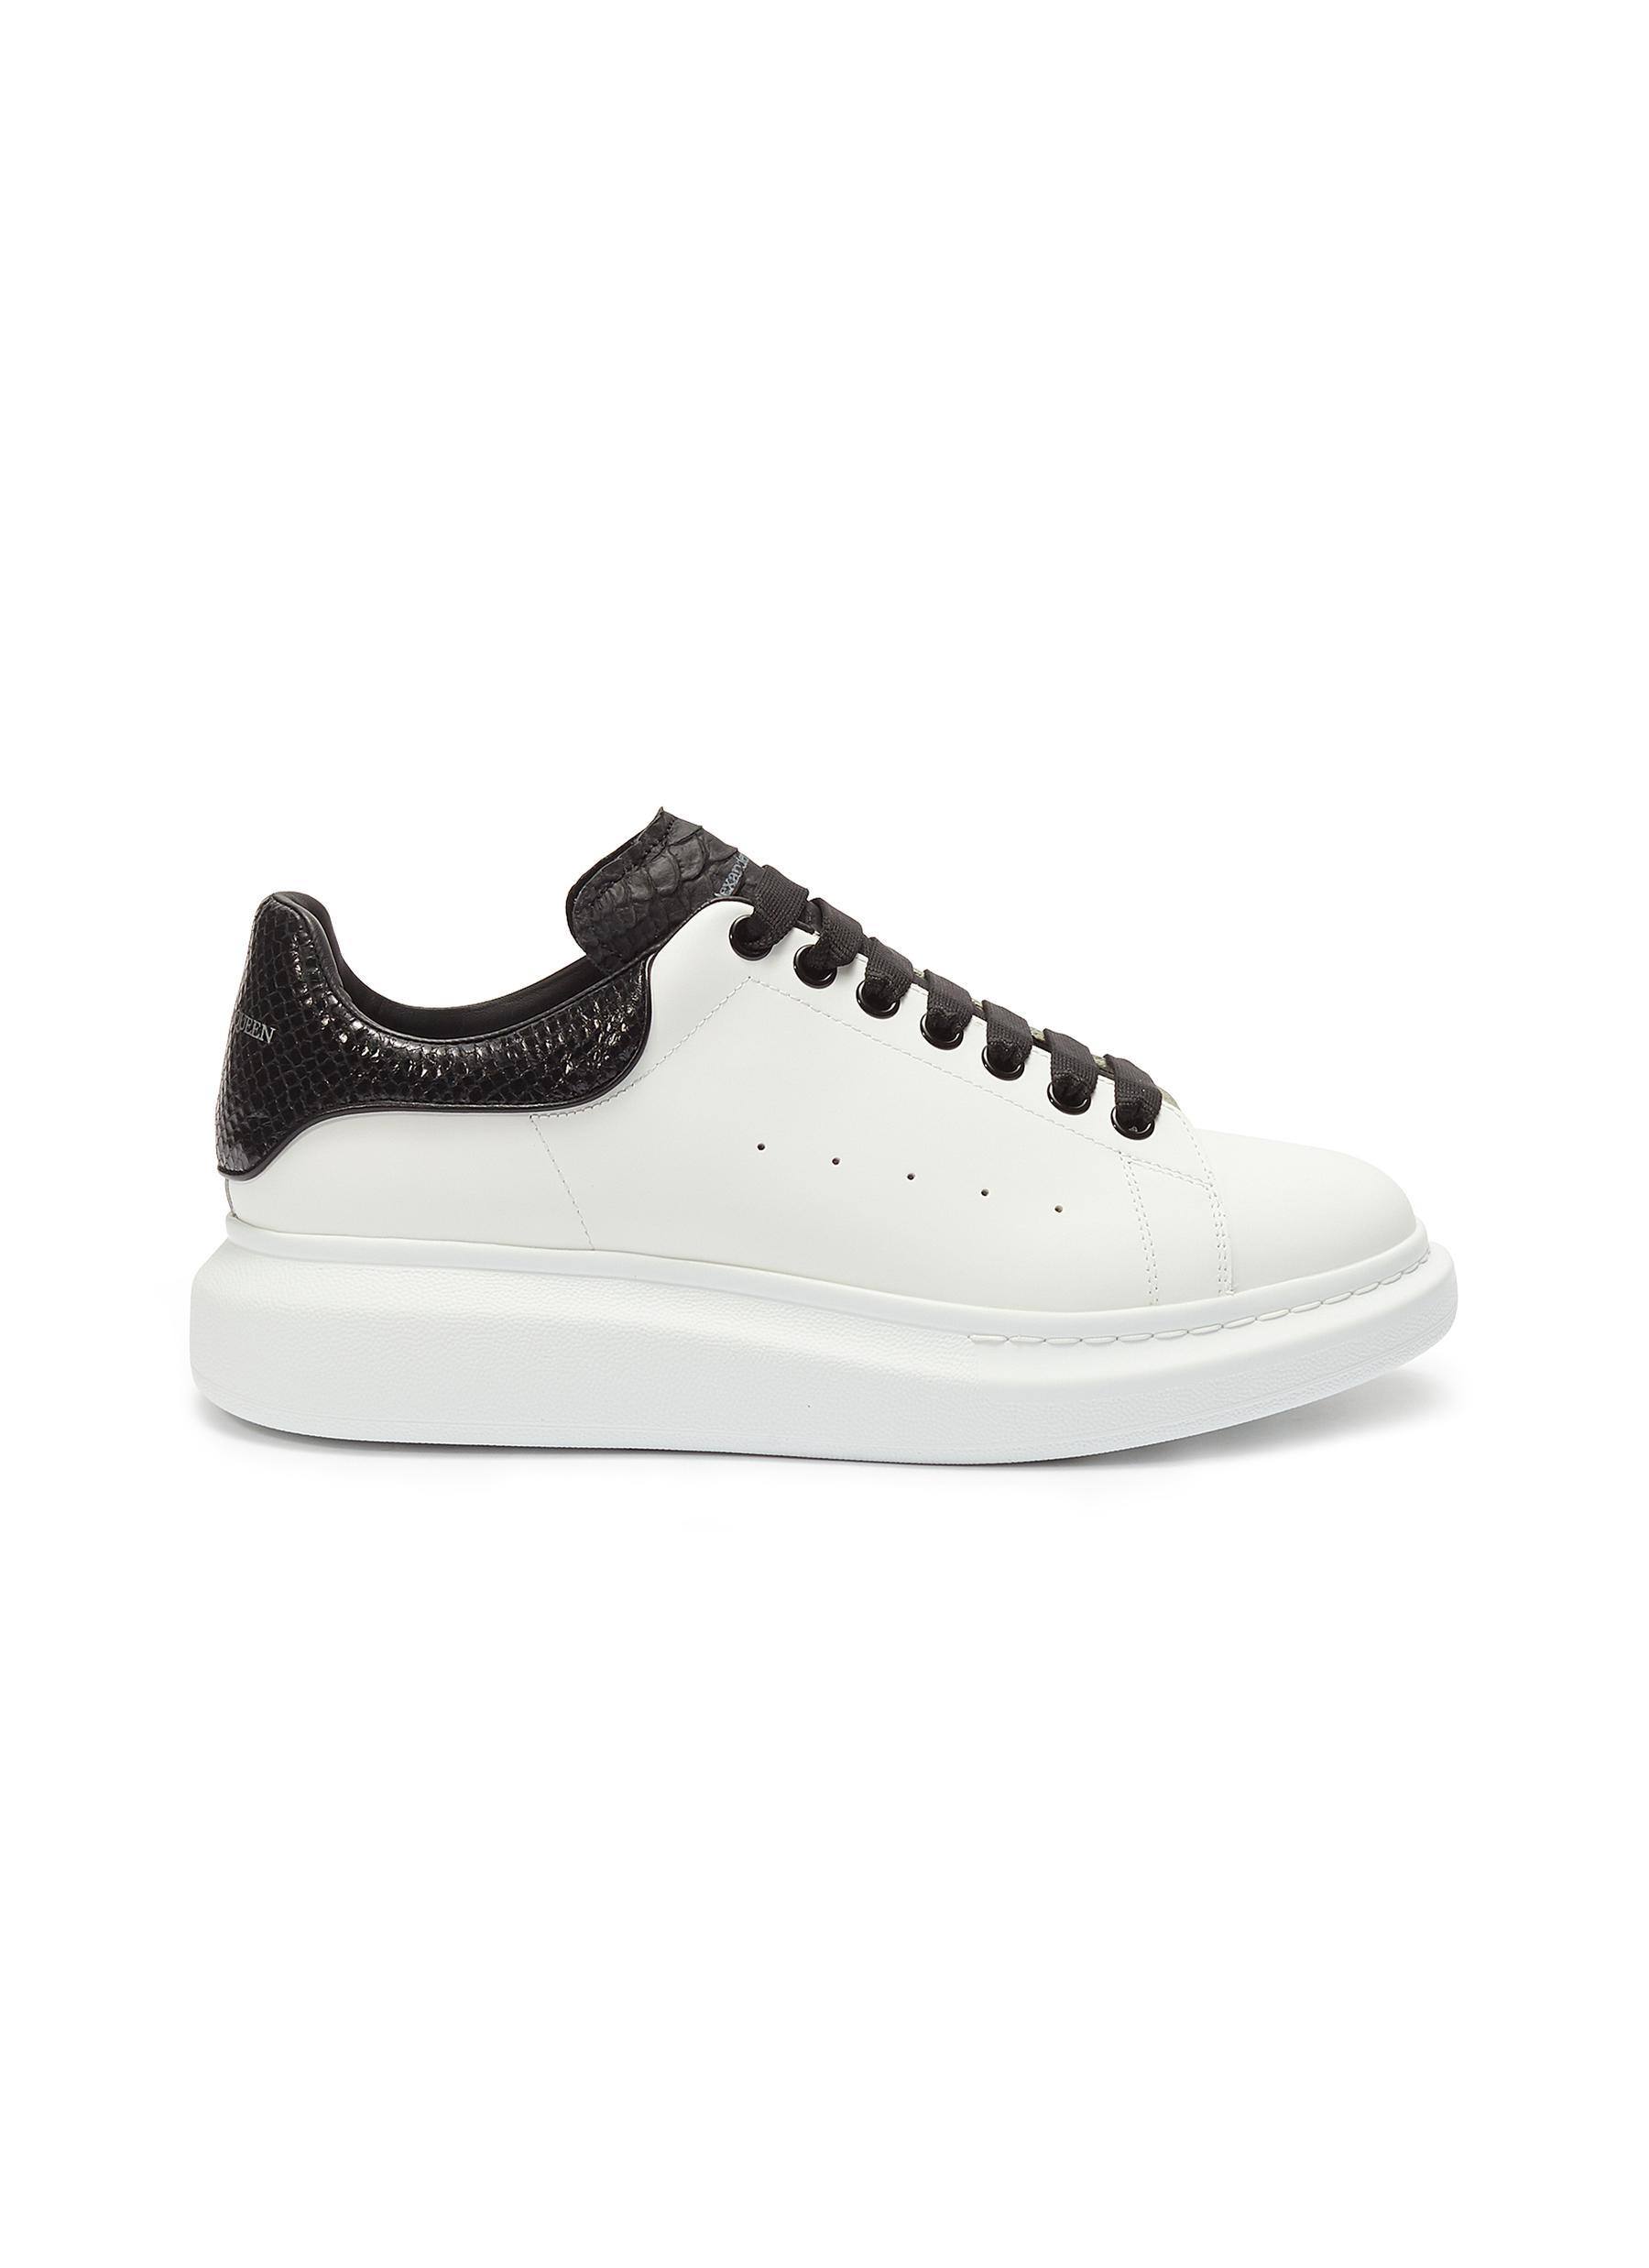 75671ad6 Alexander McQueen 'larry' Snake Embossed Collar Chunky Outsole ...